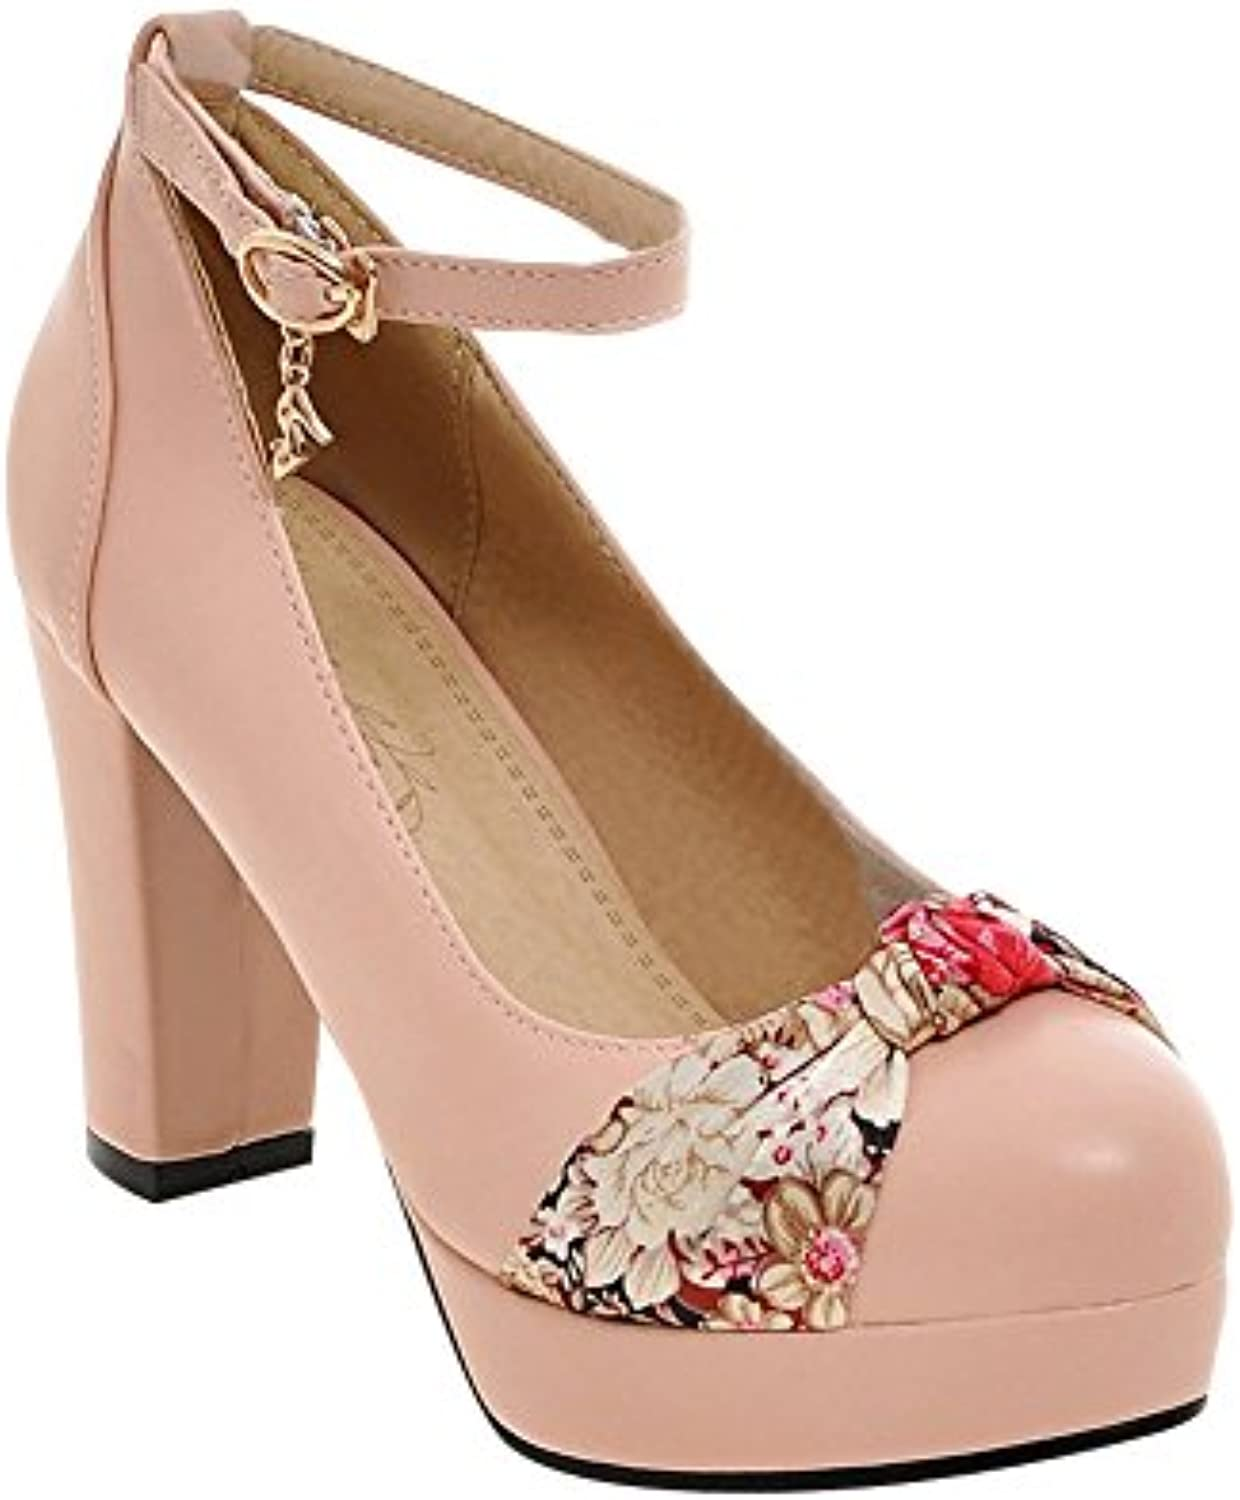 Mee Shoes Damen Ankle strap Plateau Schleife chunky heels Pumps